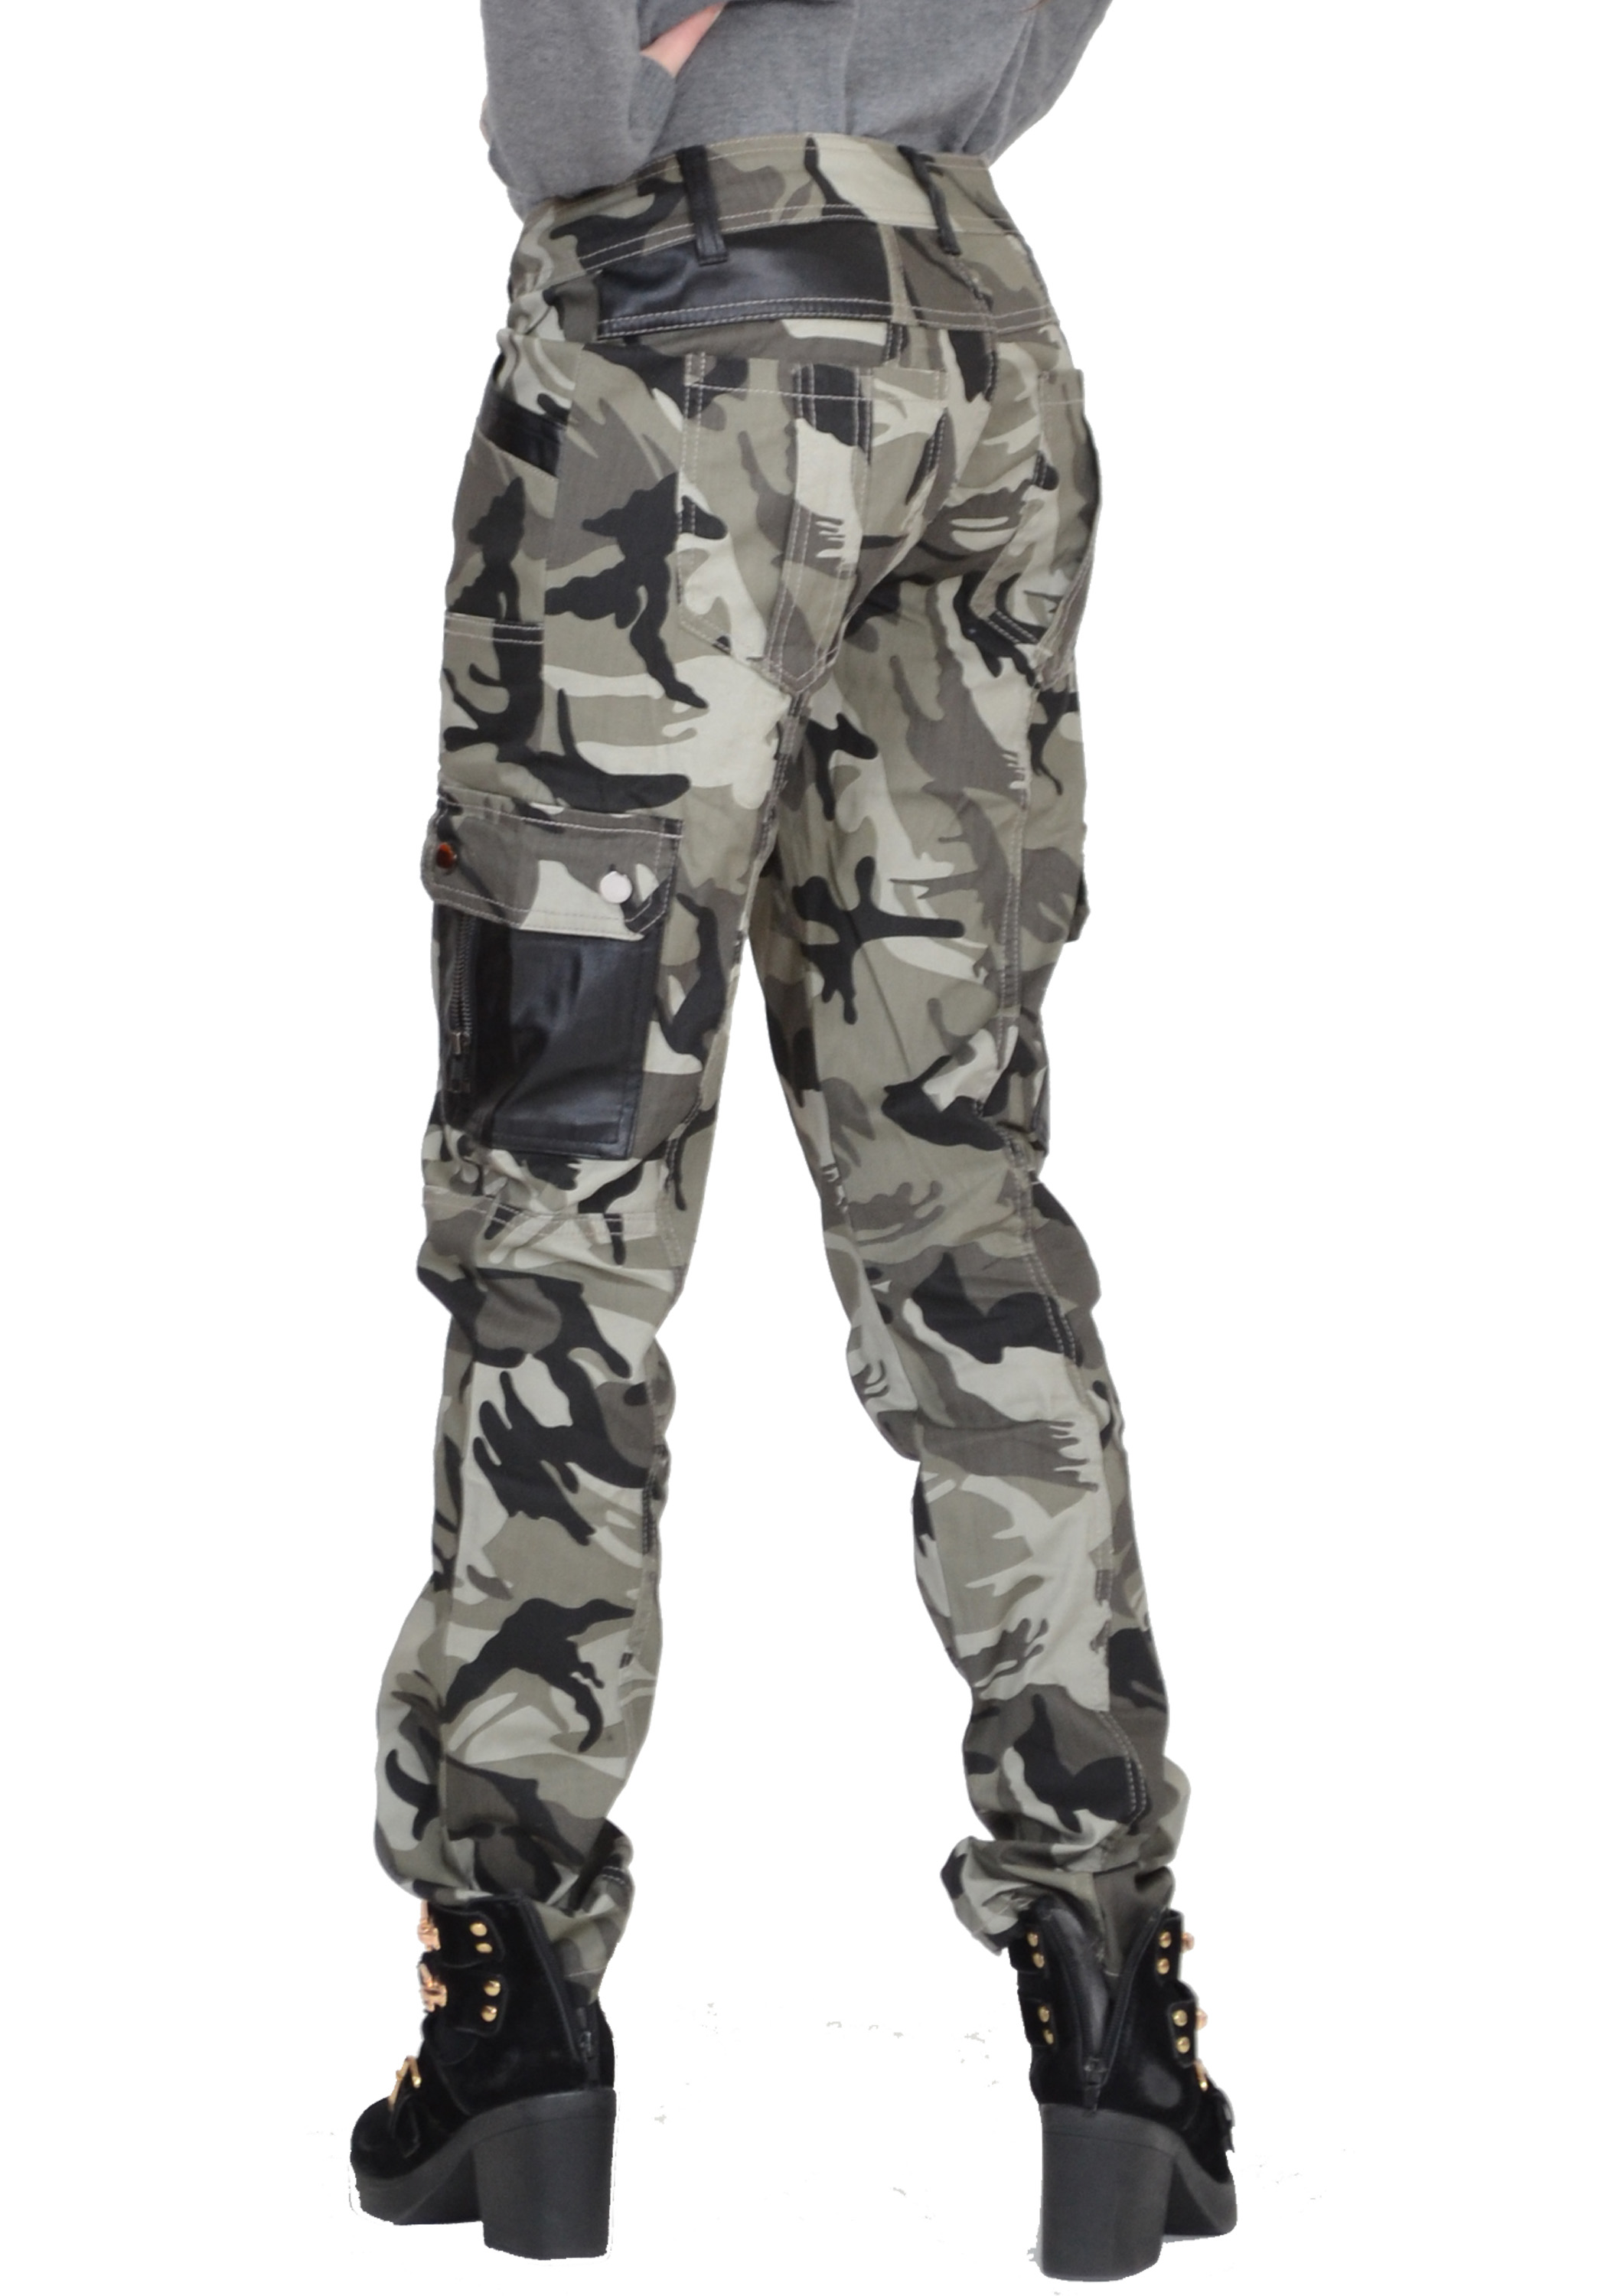 Find mens camo pants and hunting pants that fit your style, and your budget. If you are an avid hunter you know the clothing you choose can make or break an otherwise great experience. Extreme temperatures of any kind hinder your progress, mobility, and general enjoyment.